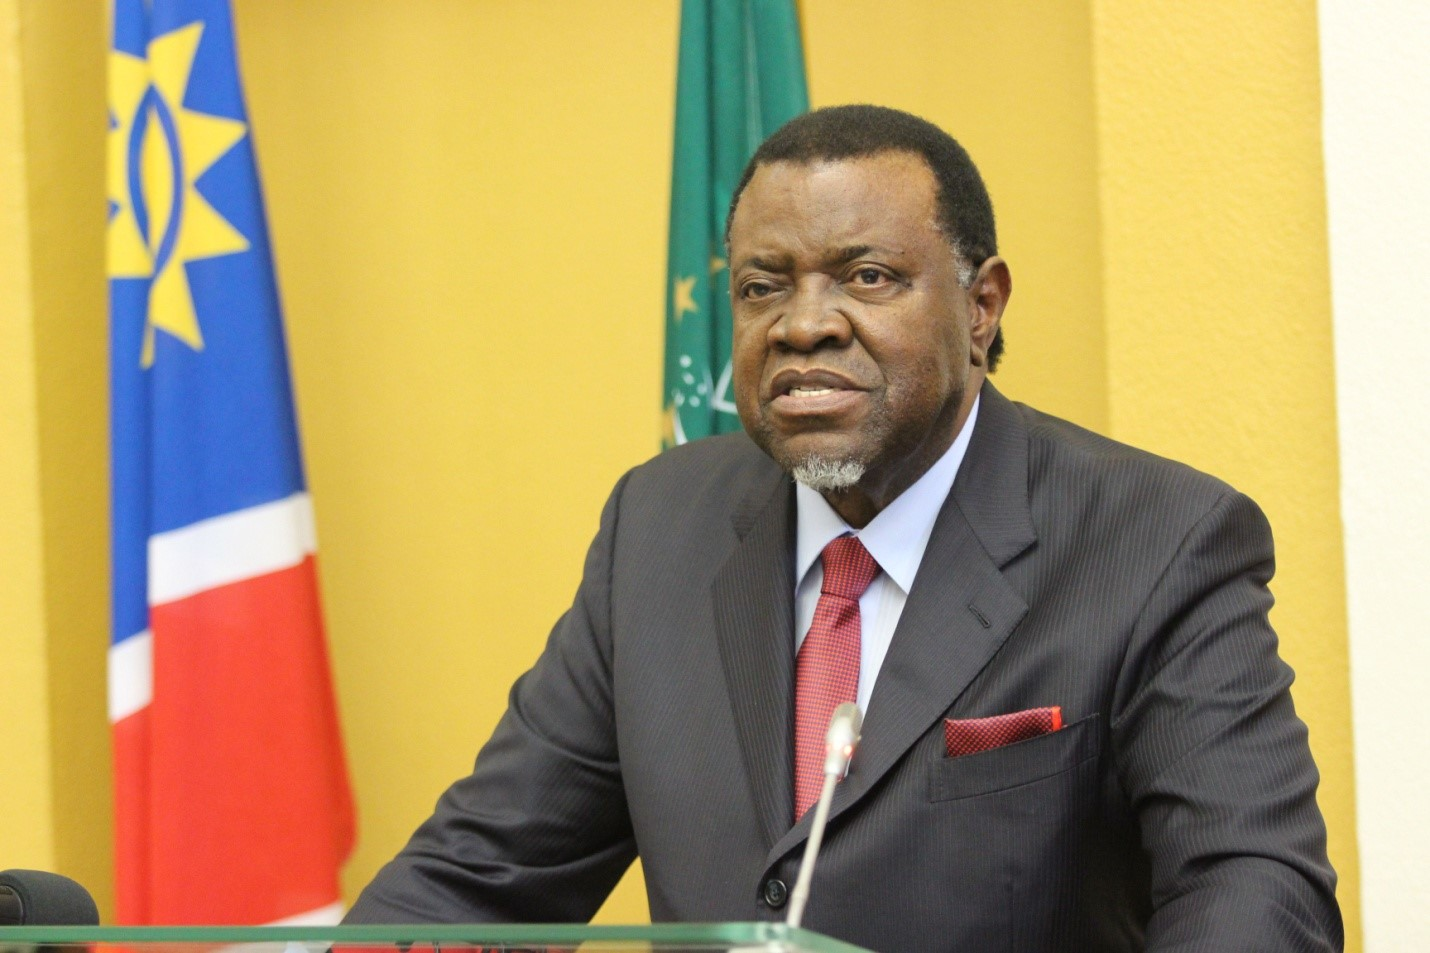 Several figures close to Namibian President Hage Geingob were filmed discussing the laundering of political contributions